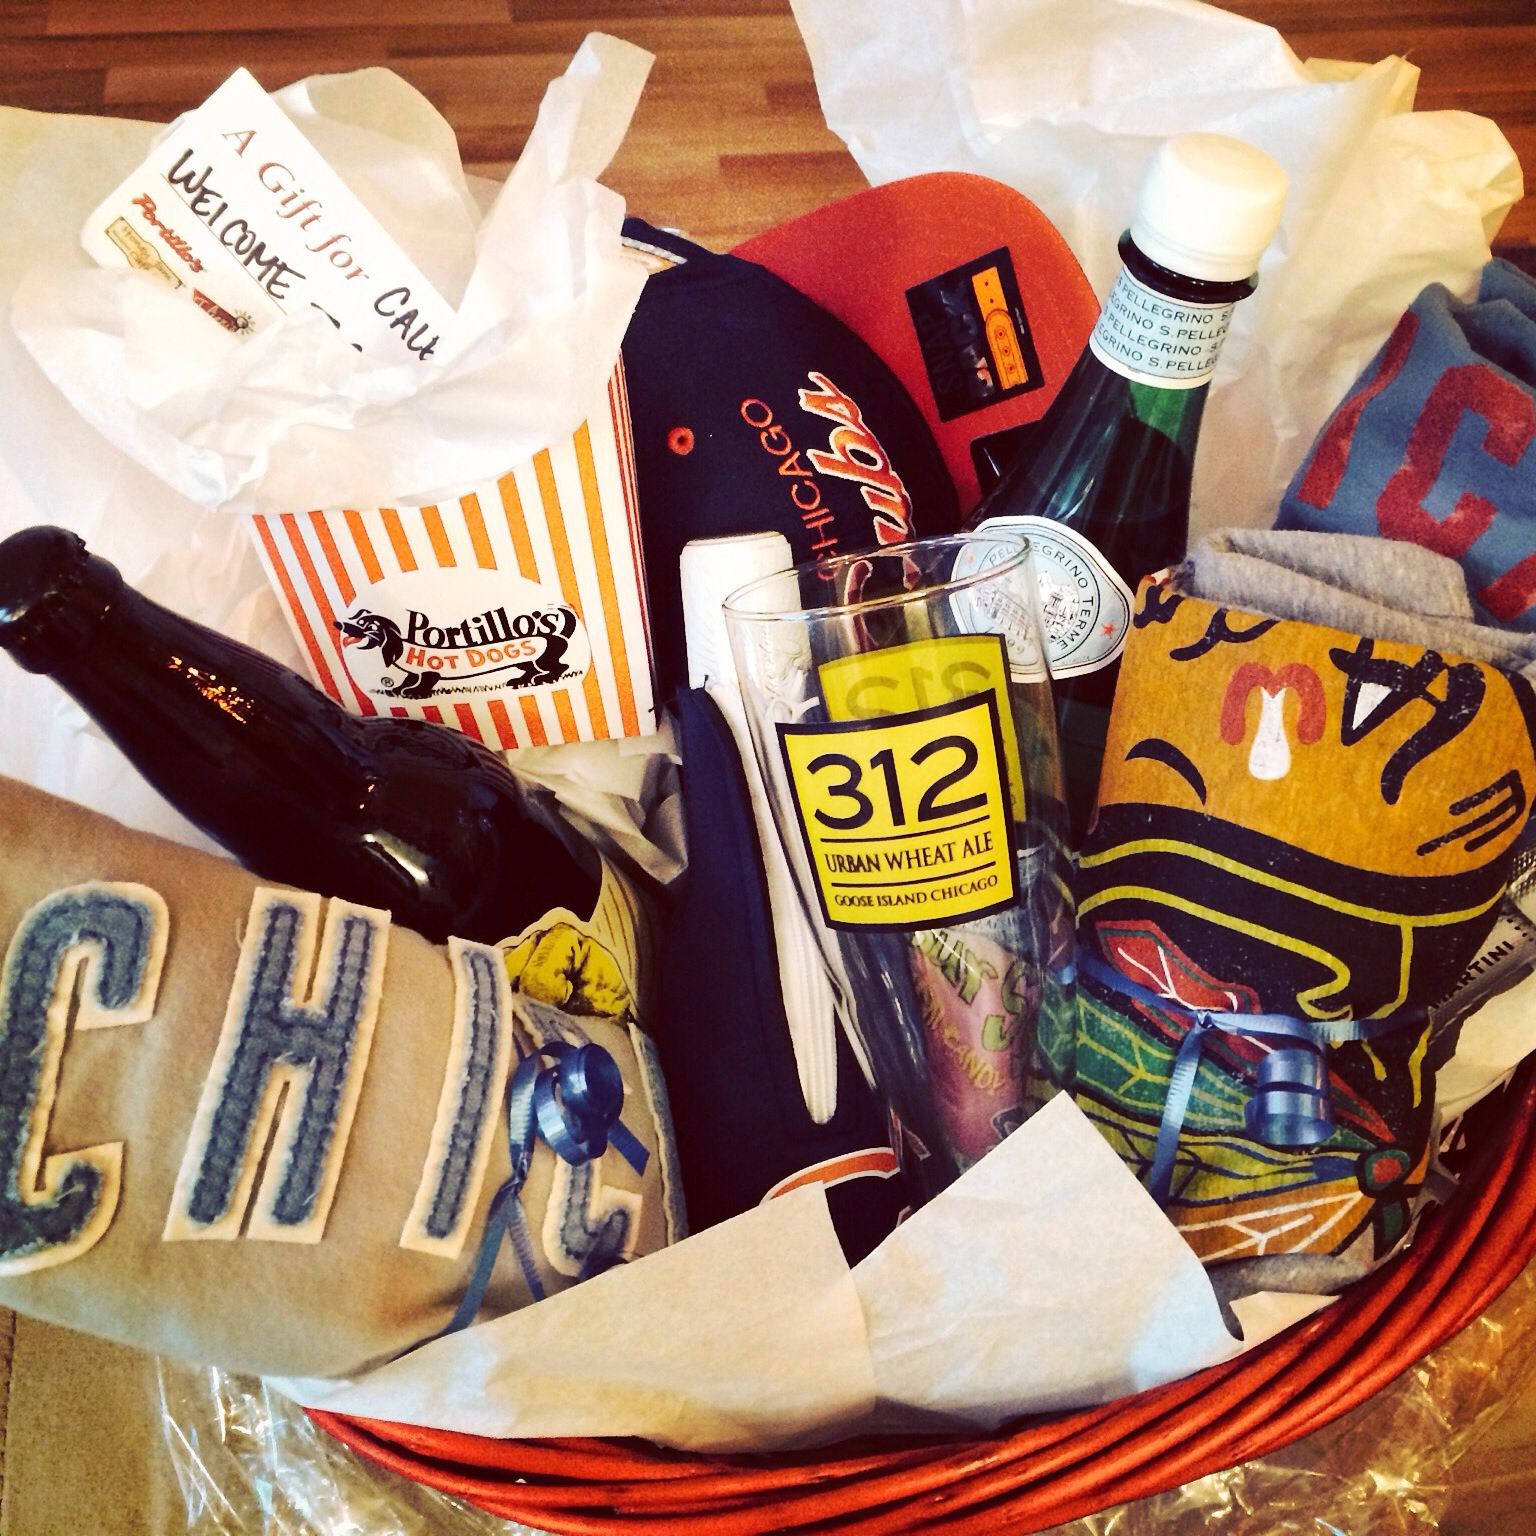 Welcome to Chicago gift basket #portillos #revolutionbrewery #blackhawks # cubs #bears